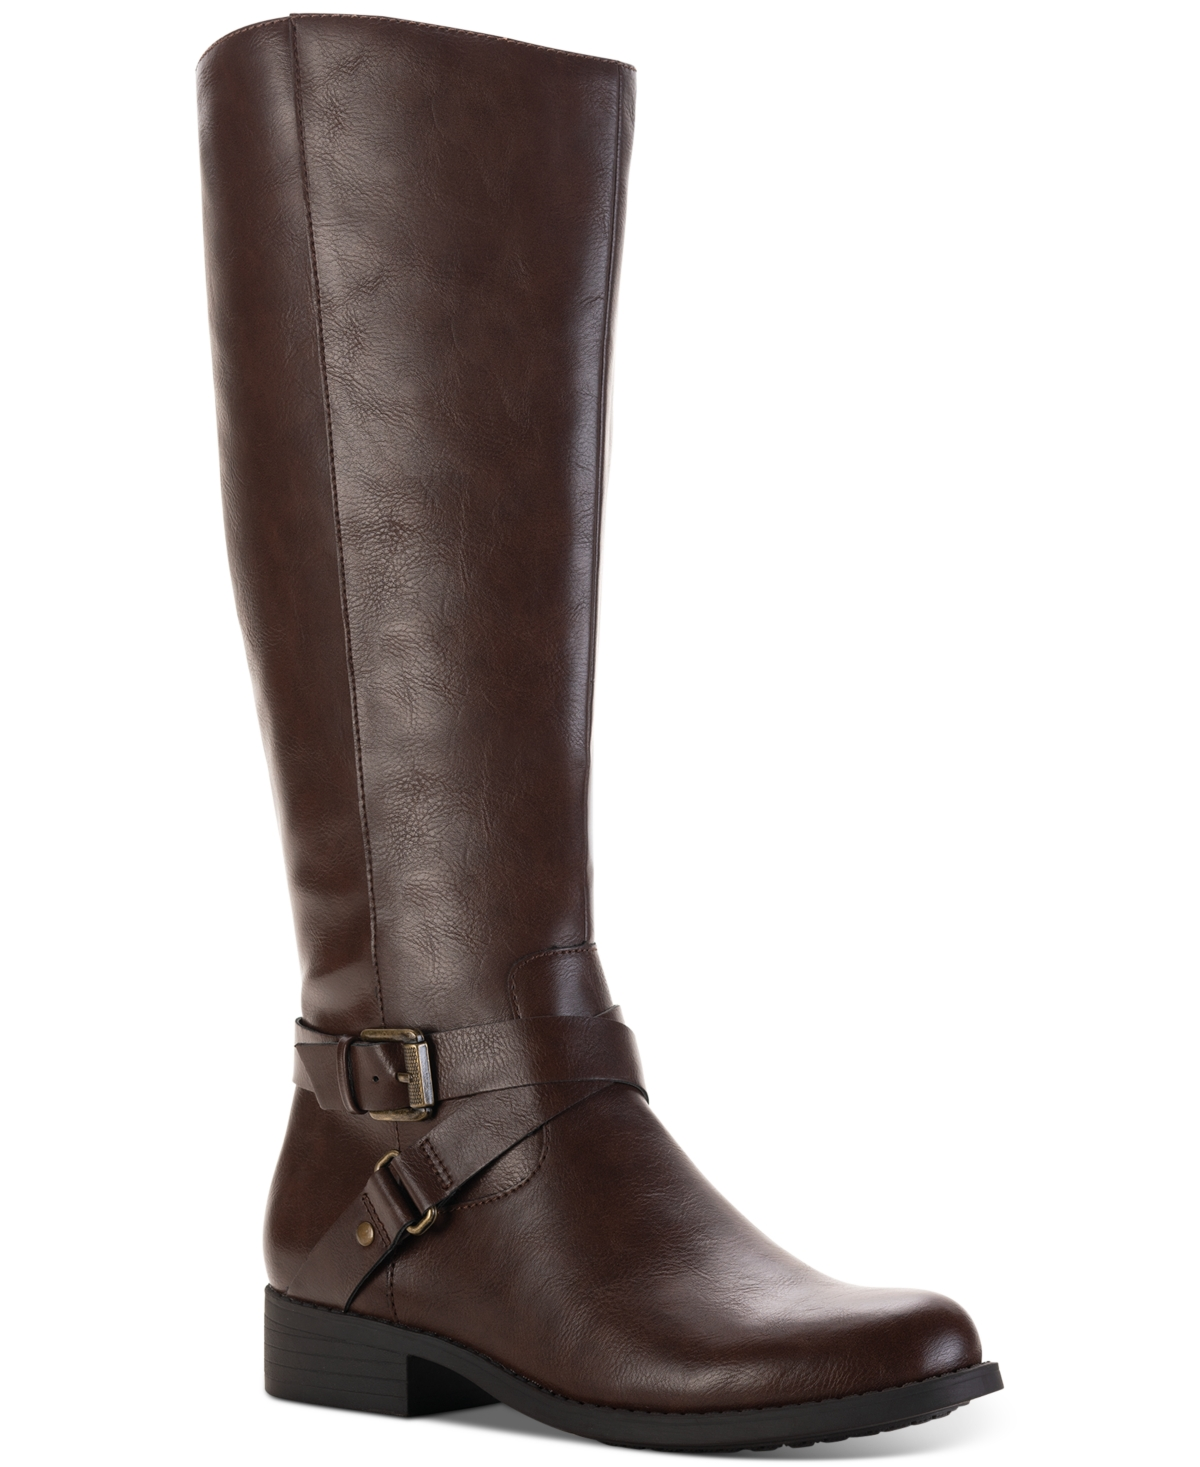 Style & Co Marliee Wide-Calf Riding Boots, Created for Macy's Women's Shoes